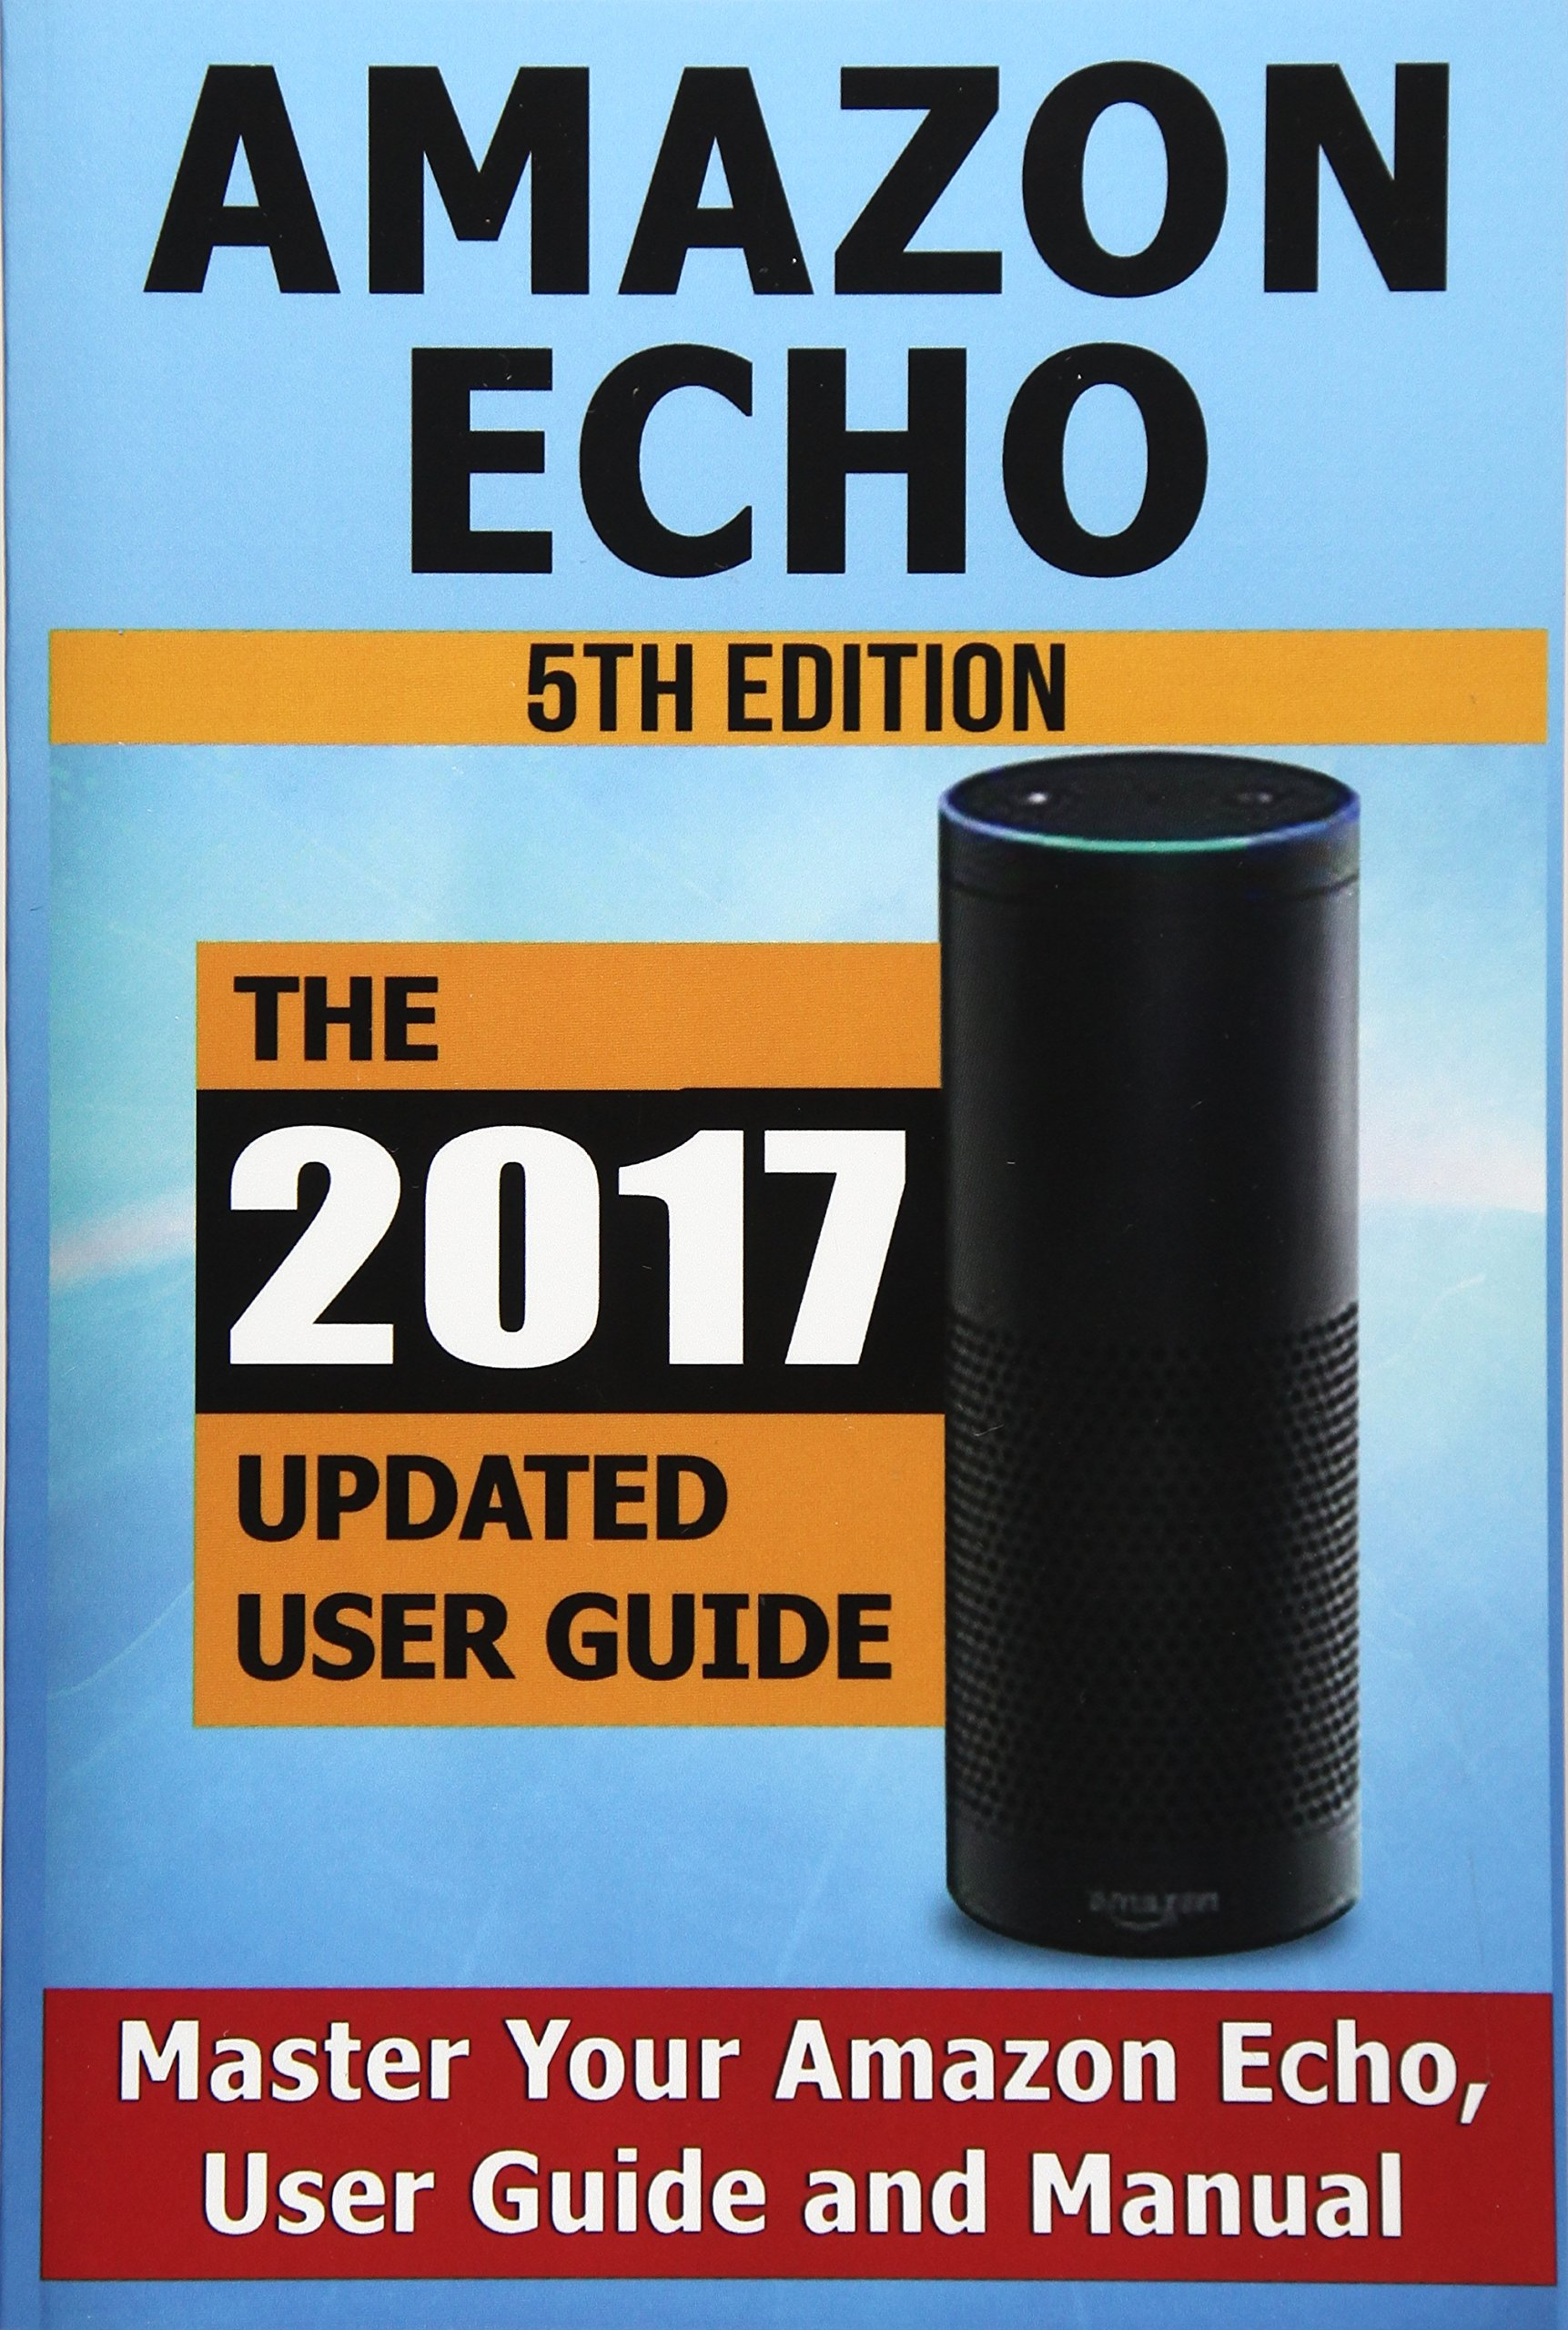 Amazon Echo: Master Your Amazon Echo; User Guide and Manual: Andrew  Mckinnon: 9781514325834: Amazon.com: Books